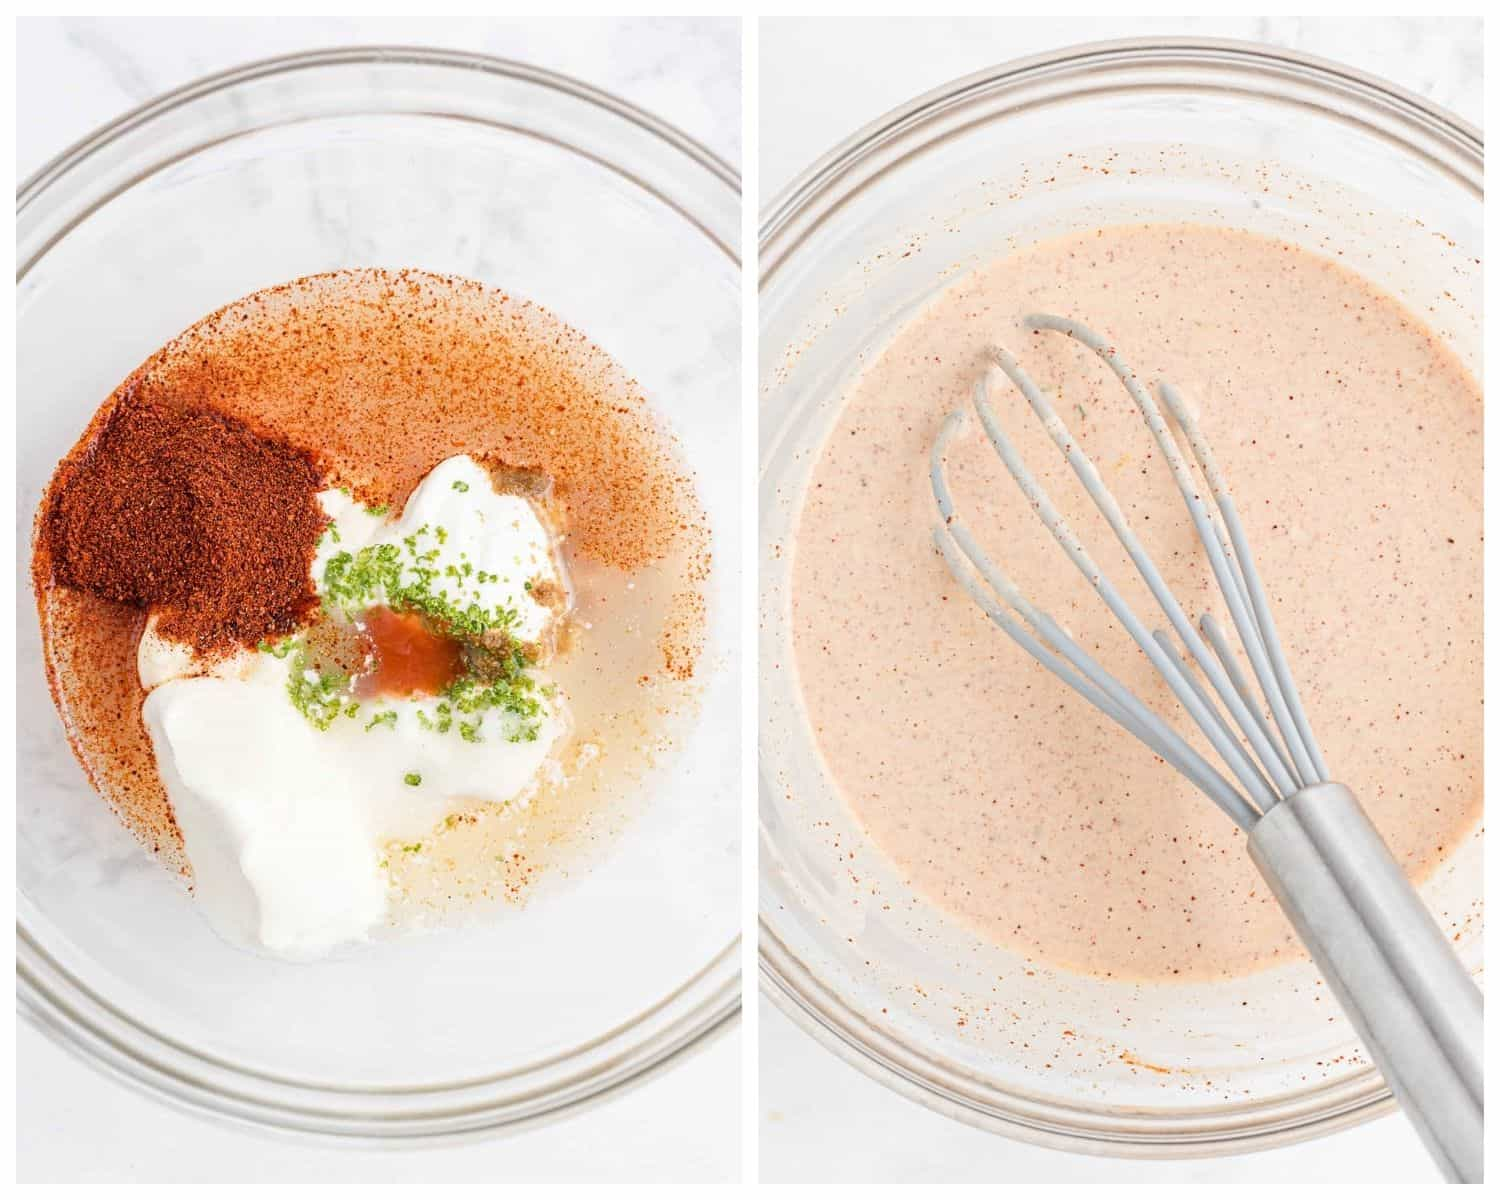 Salad dressing before and after being mxied.